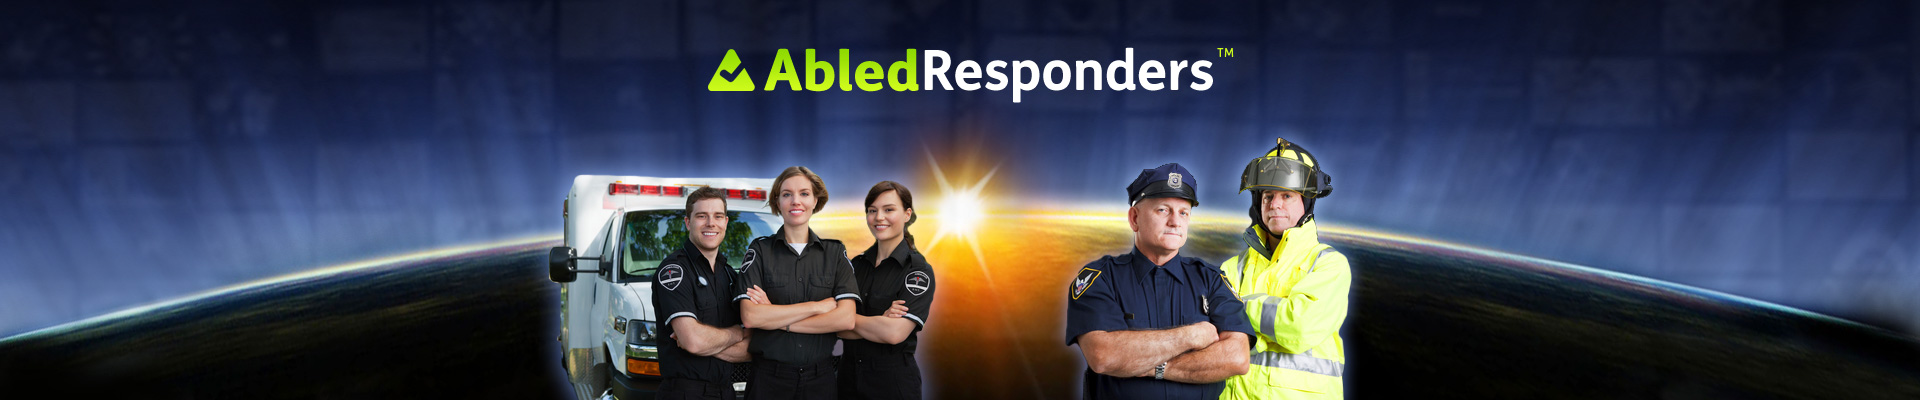 AbledResponders banner shows representatives from Police, Fire and EMS crews